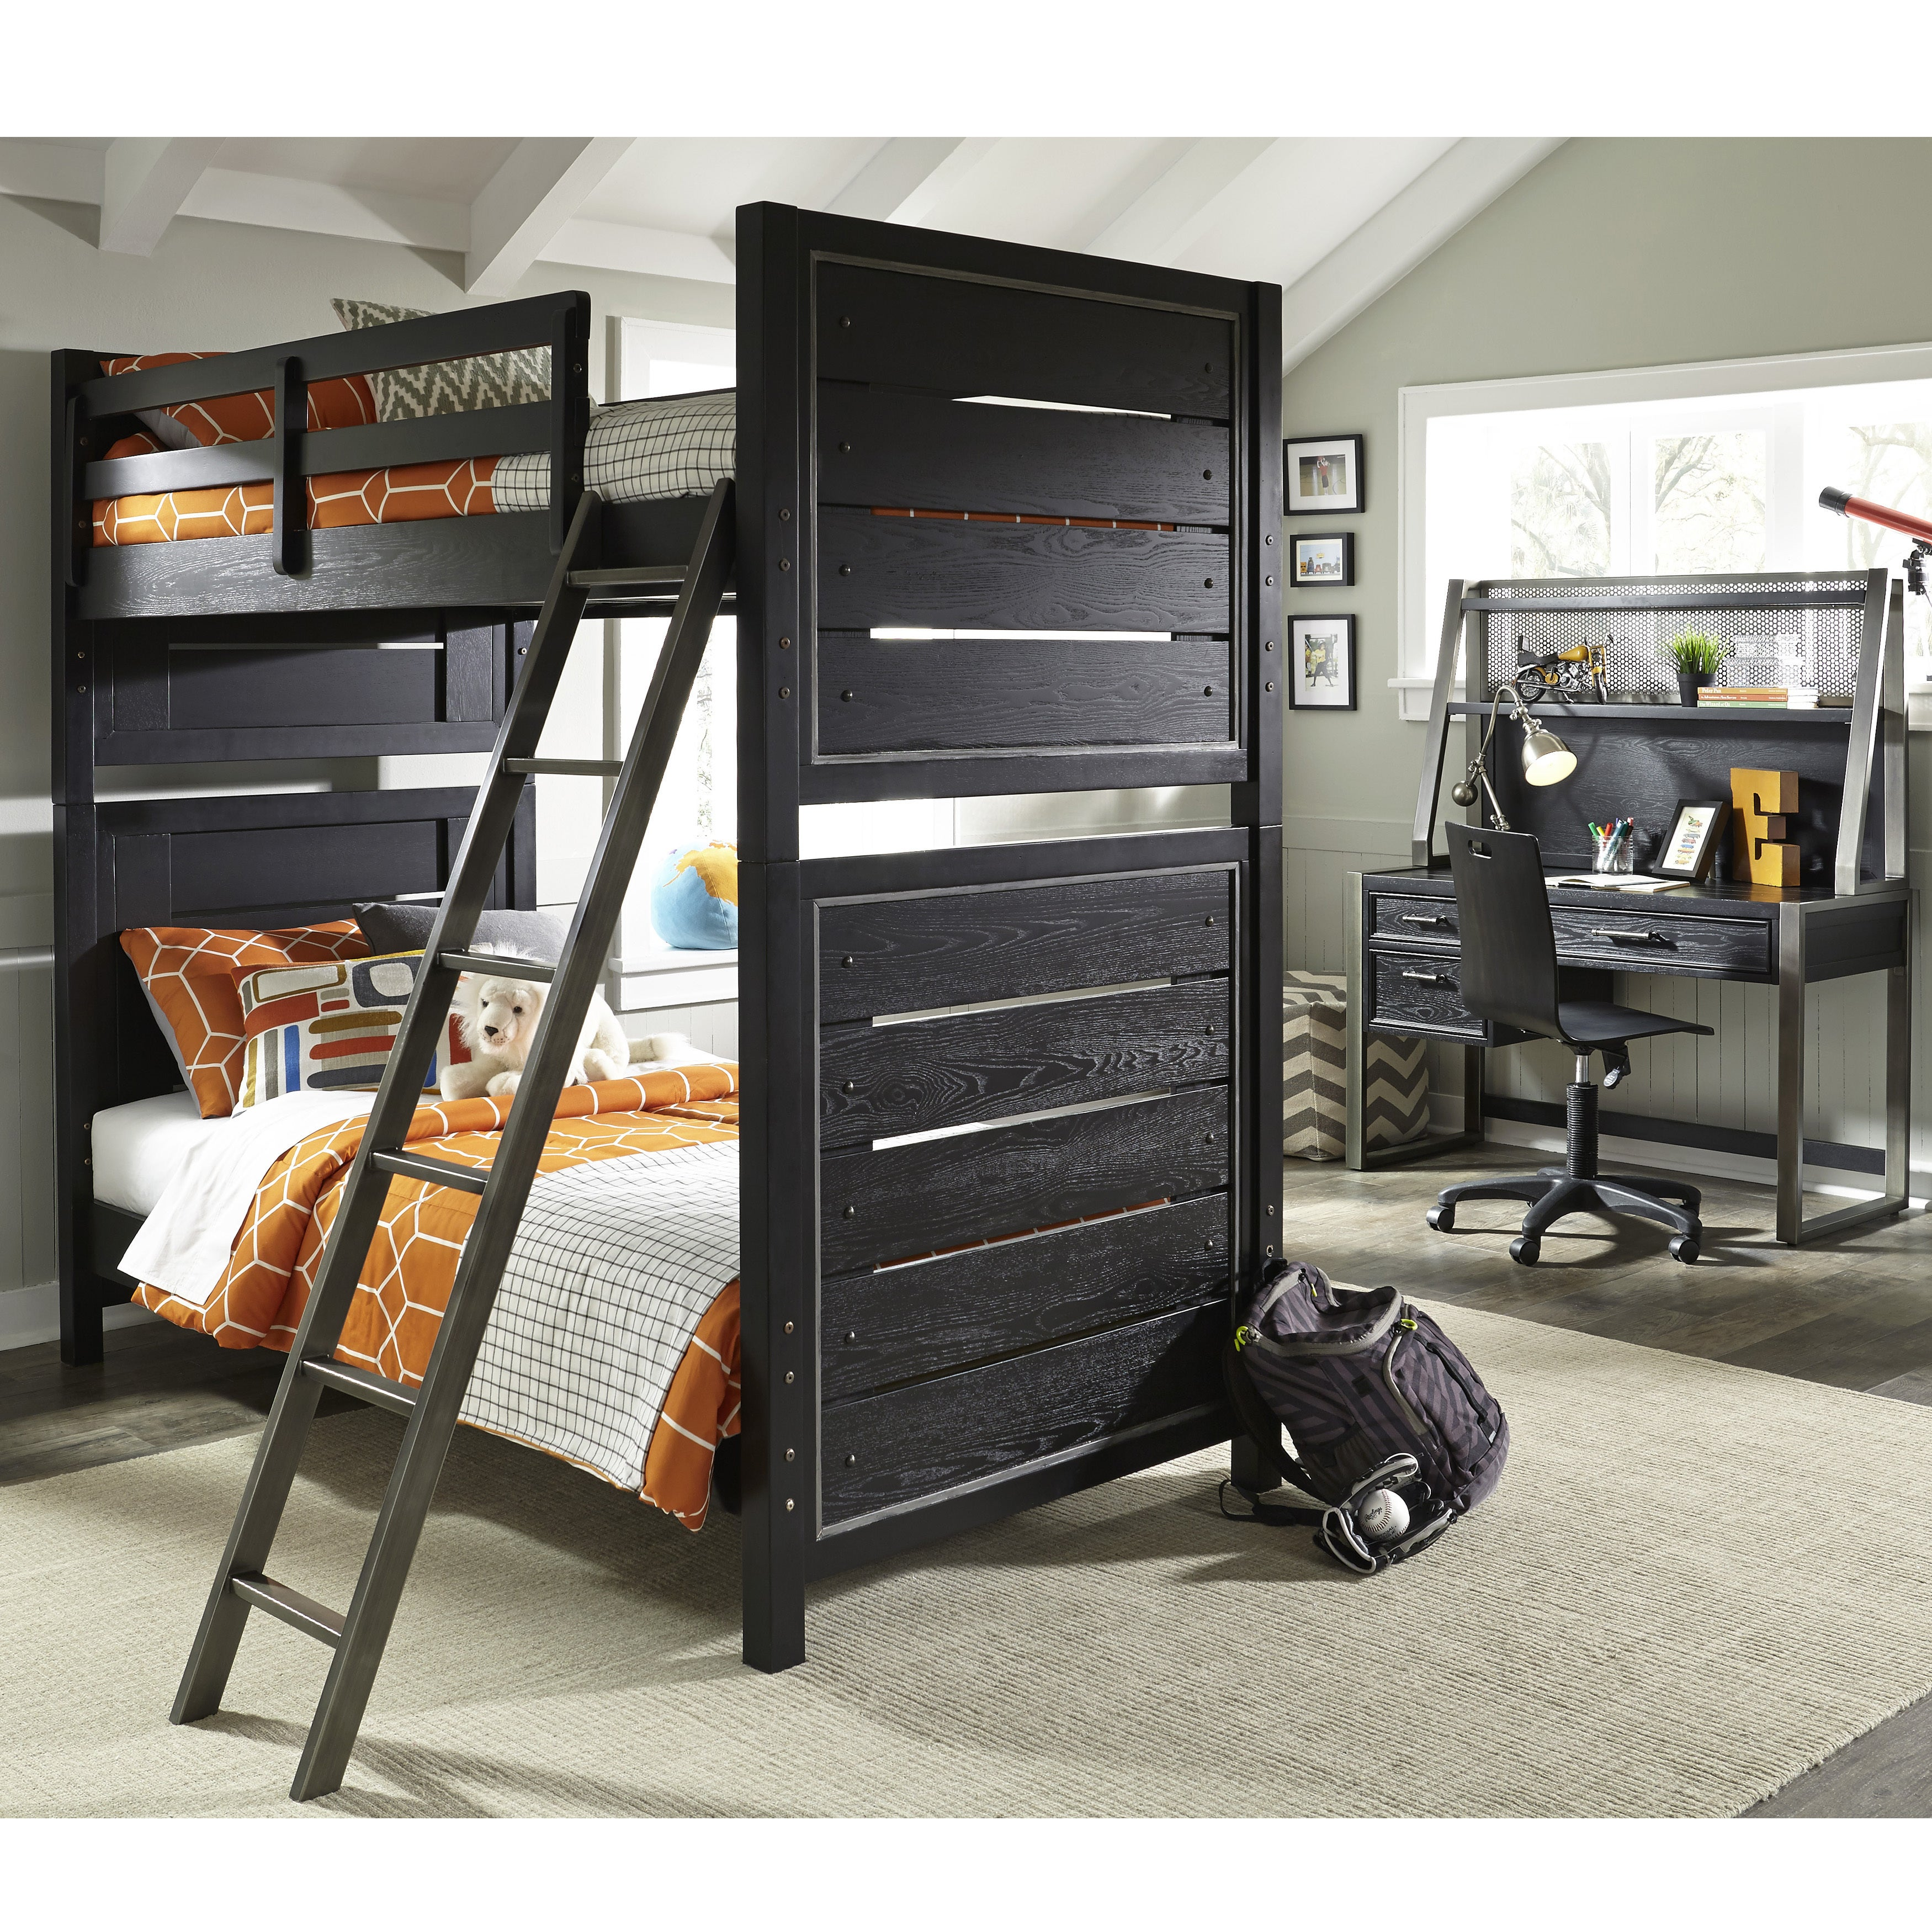 Lawrence Pulaski Graphite Youth Bunk Bed with Full Extens...